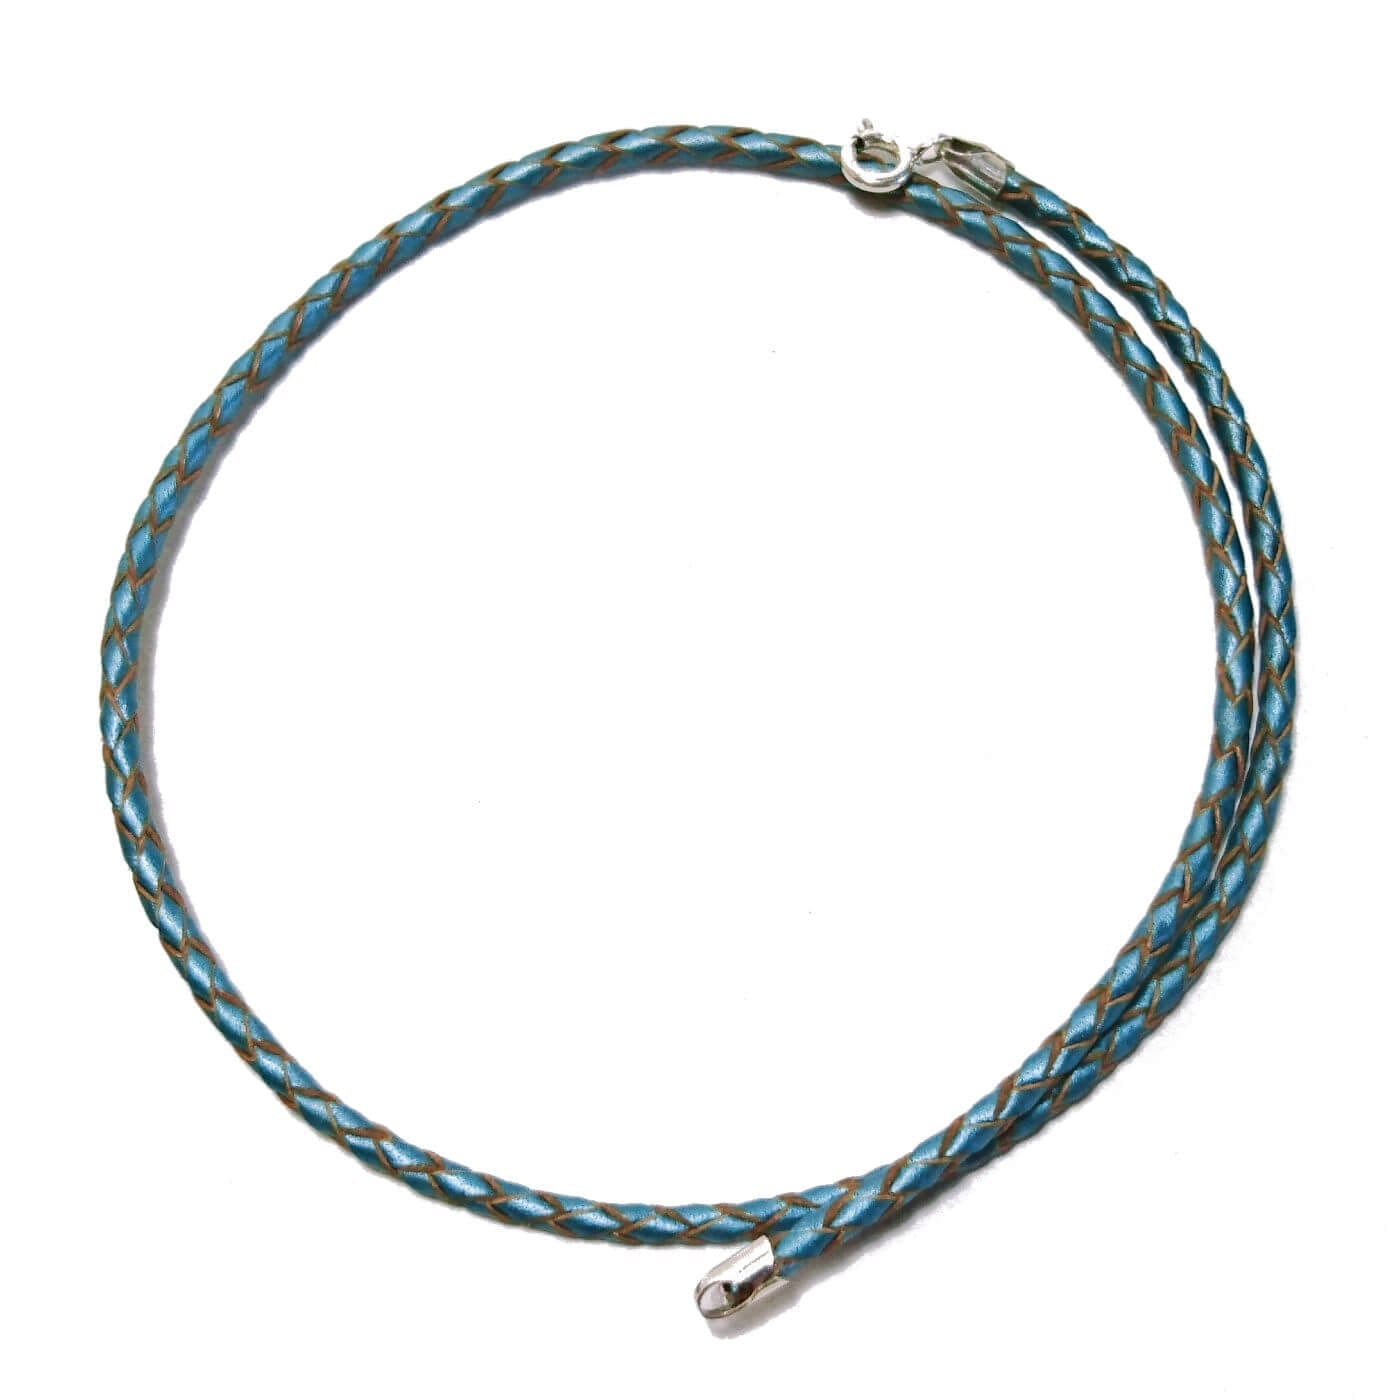 light-blue-metallic-braided-leather-necklace